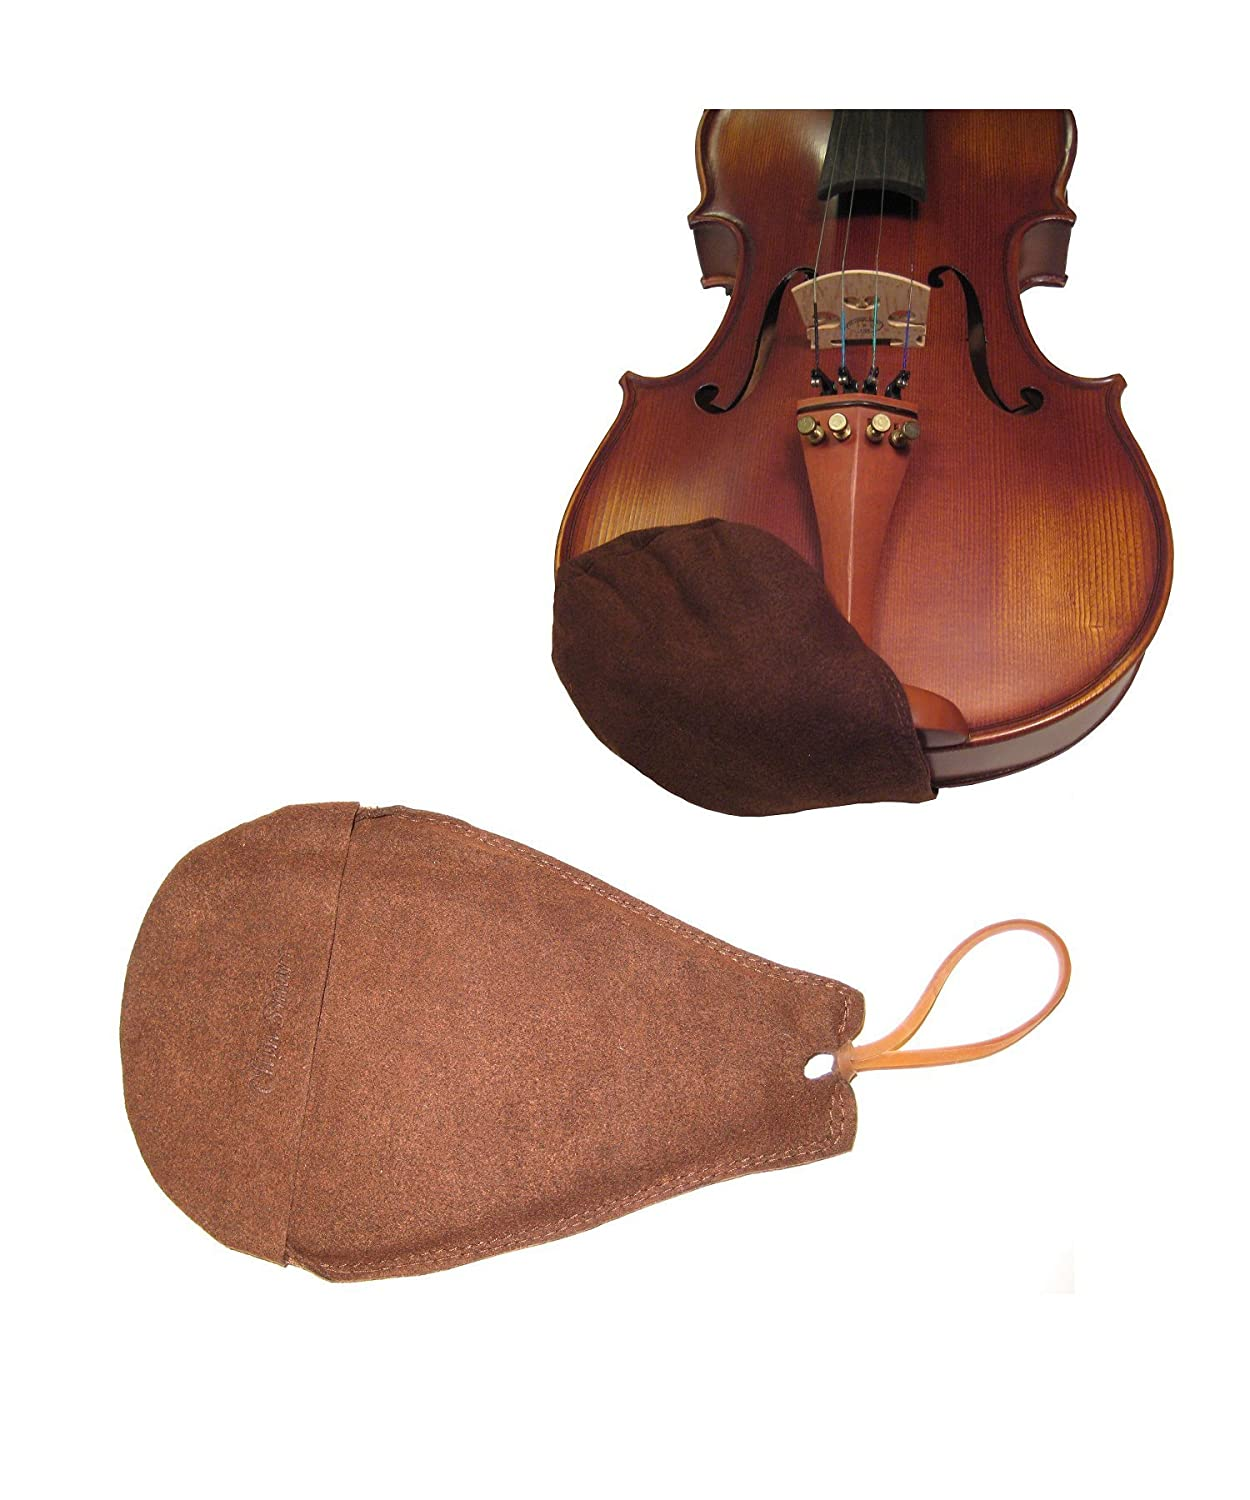 Chin Smart Chinrest Cover for Violin and Viola-Brown Vio Music